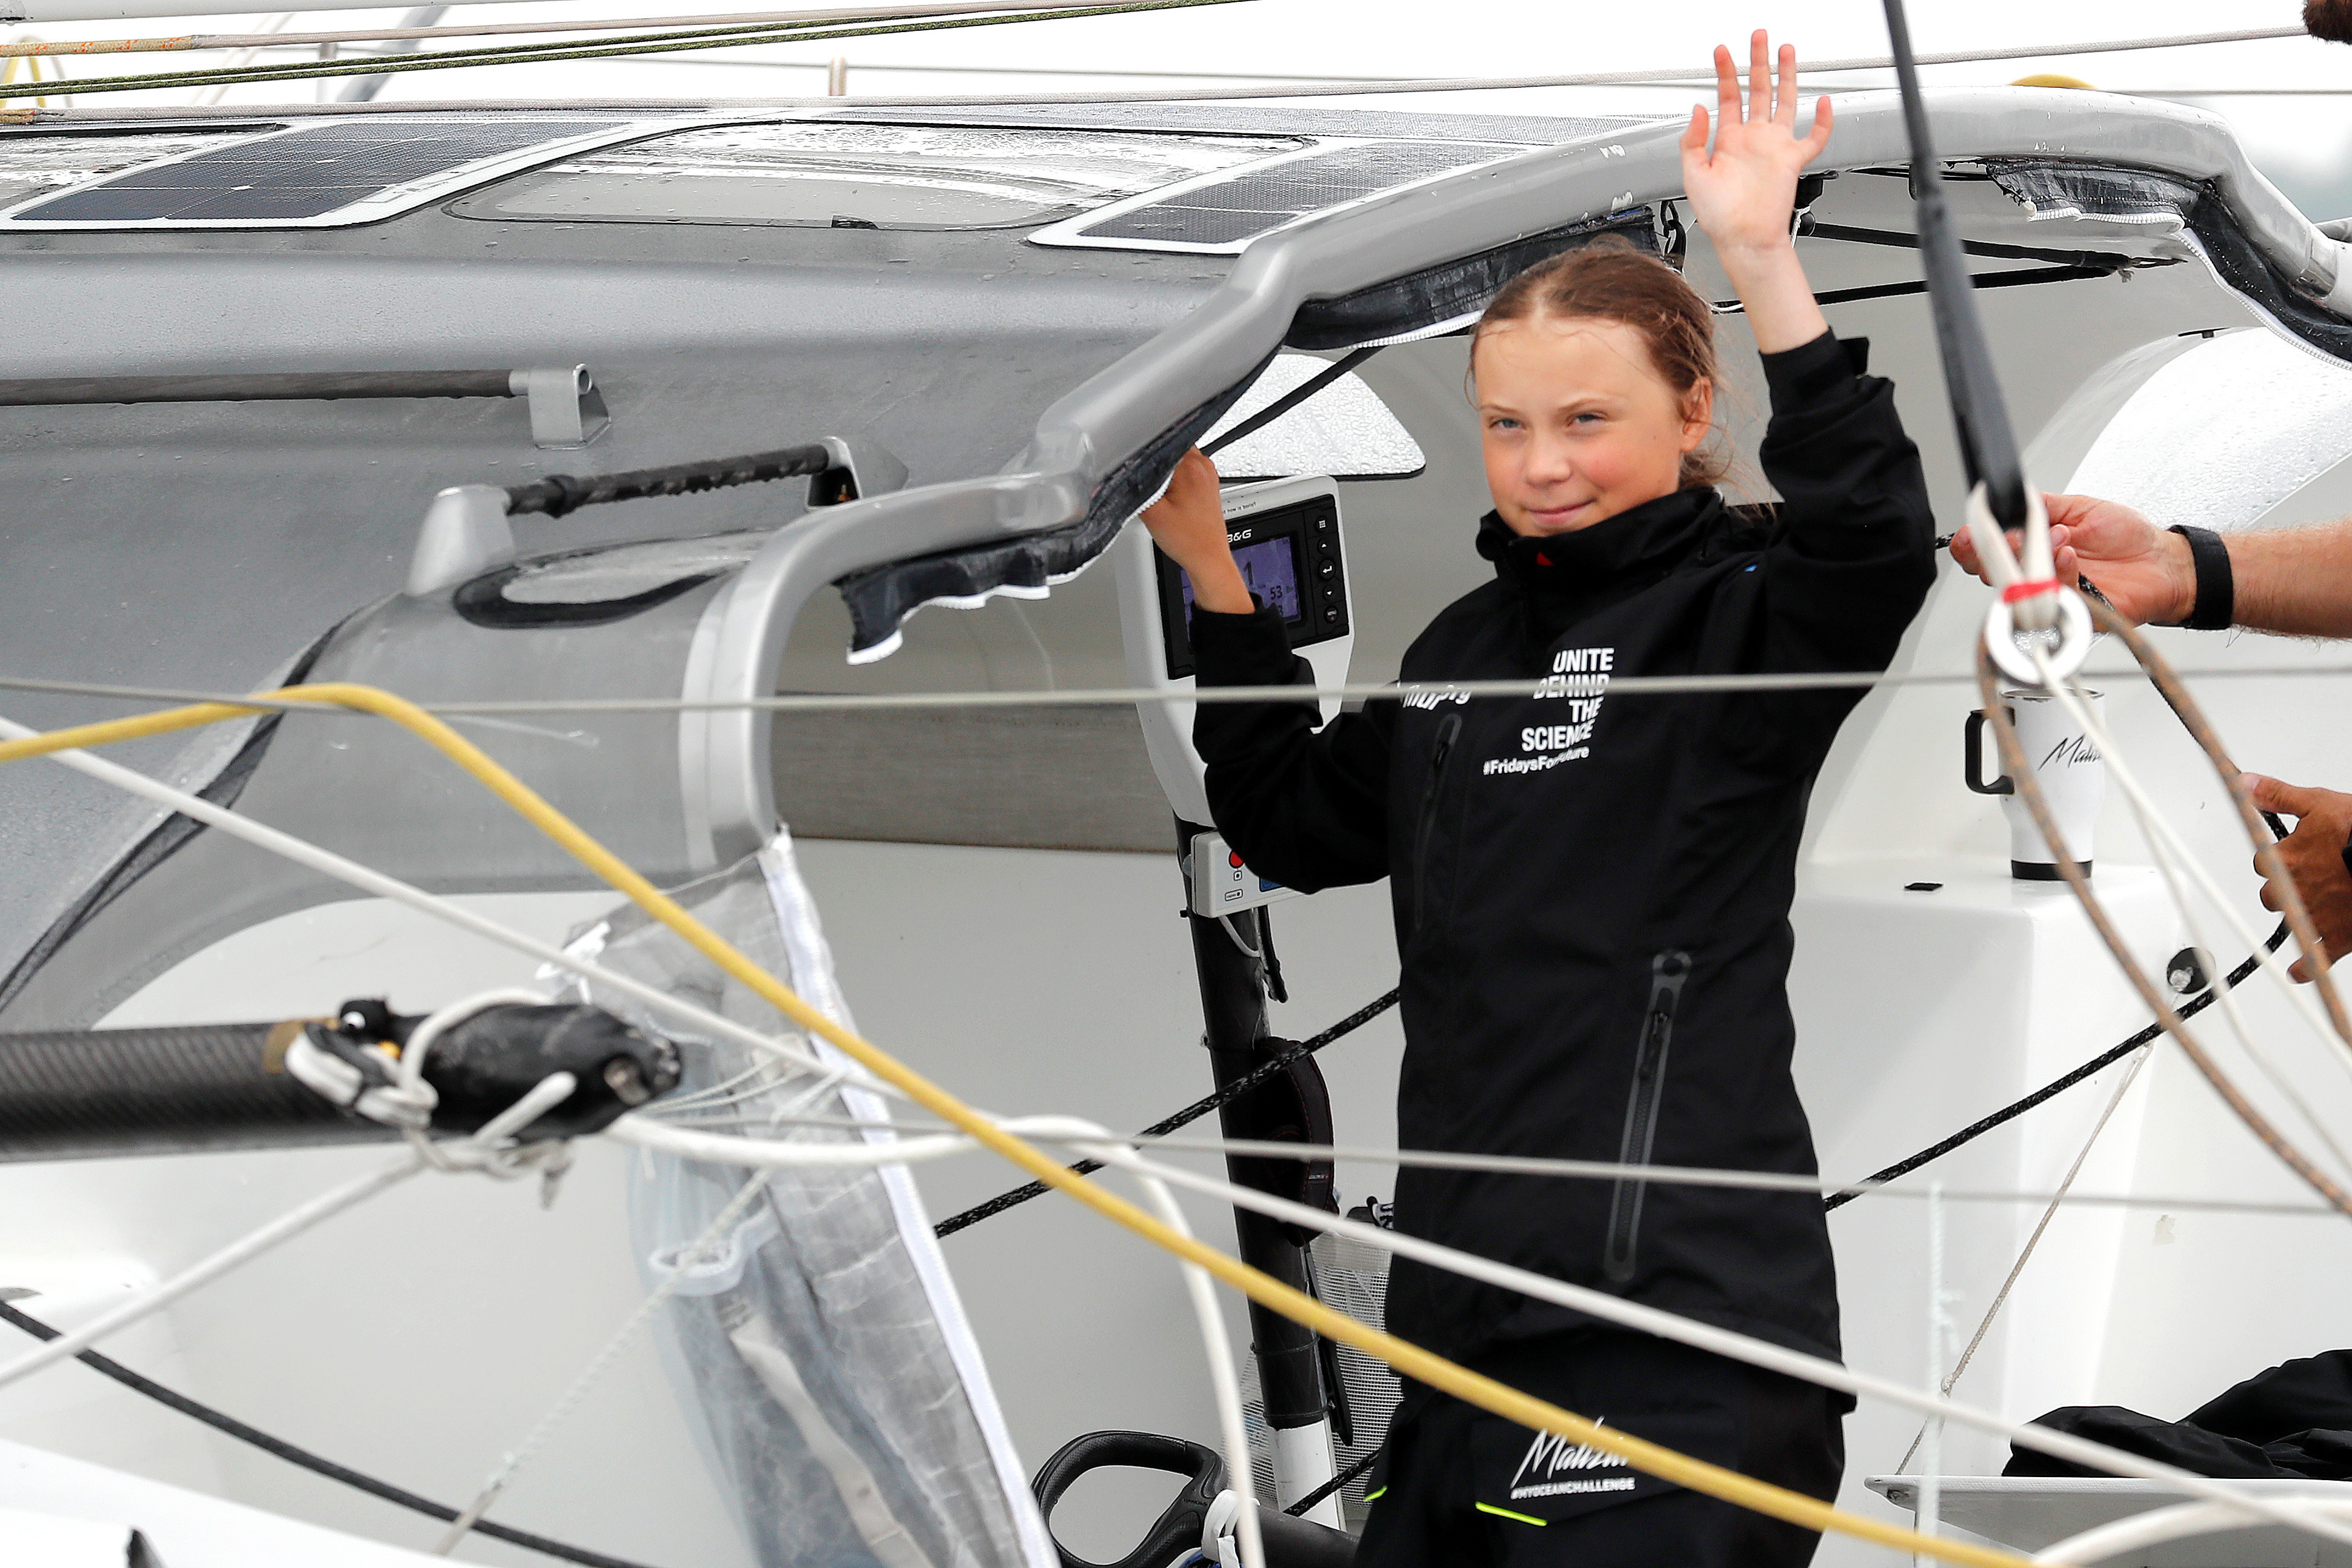 Swedish 16-year-old activist Greta Thunberg sails on the Malizia II racing yacht in New York Harbor as she nears the completion of her trans-Atlantic crossing in order to attend a United Nations summit on climate change in New York, U.S., August 28, 2019. REUTERS/Mike Segar - RC1EA15BEDC0